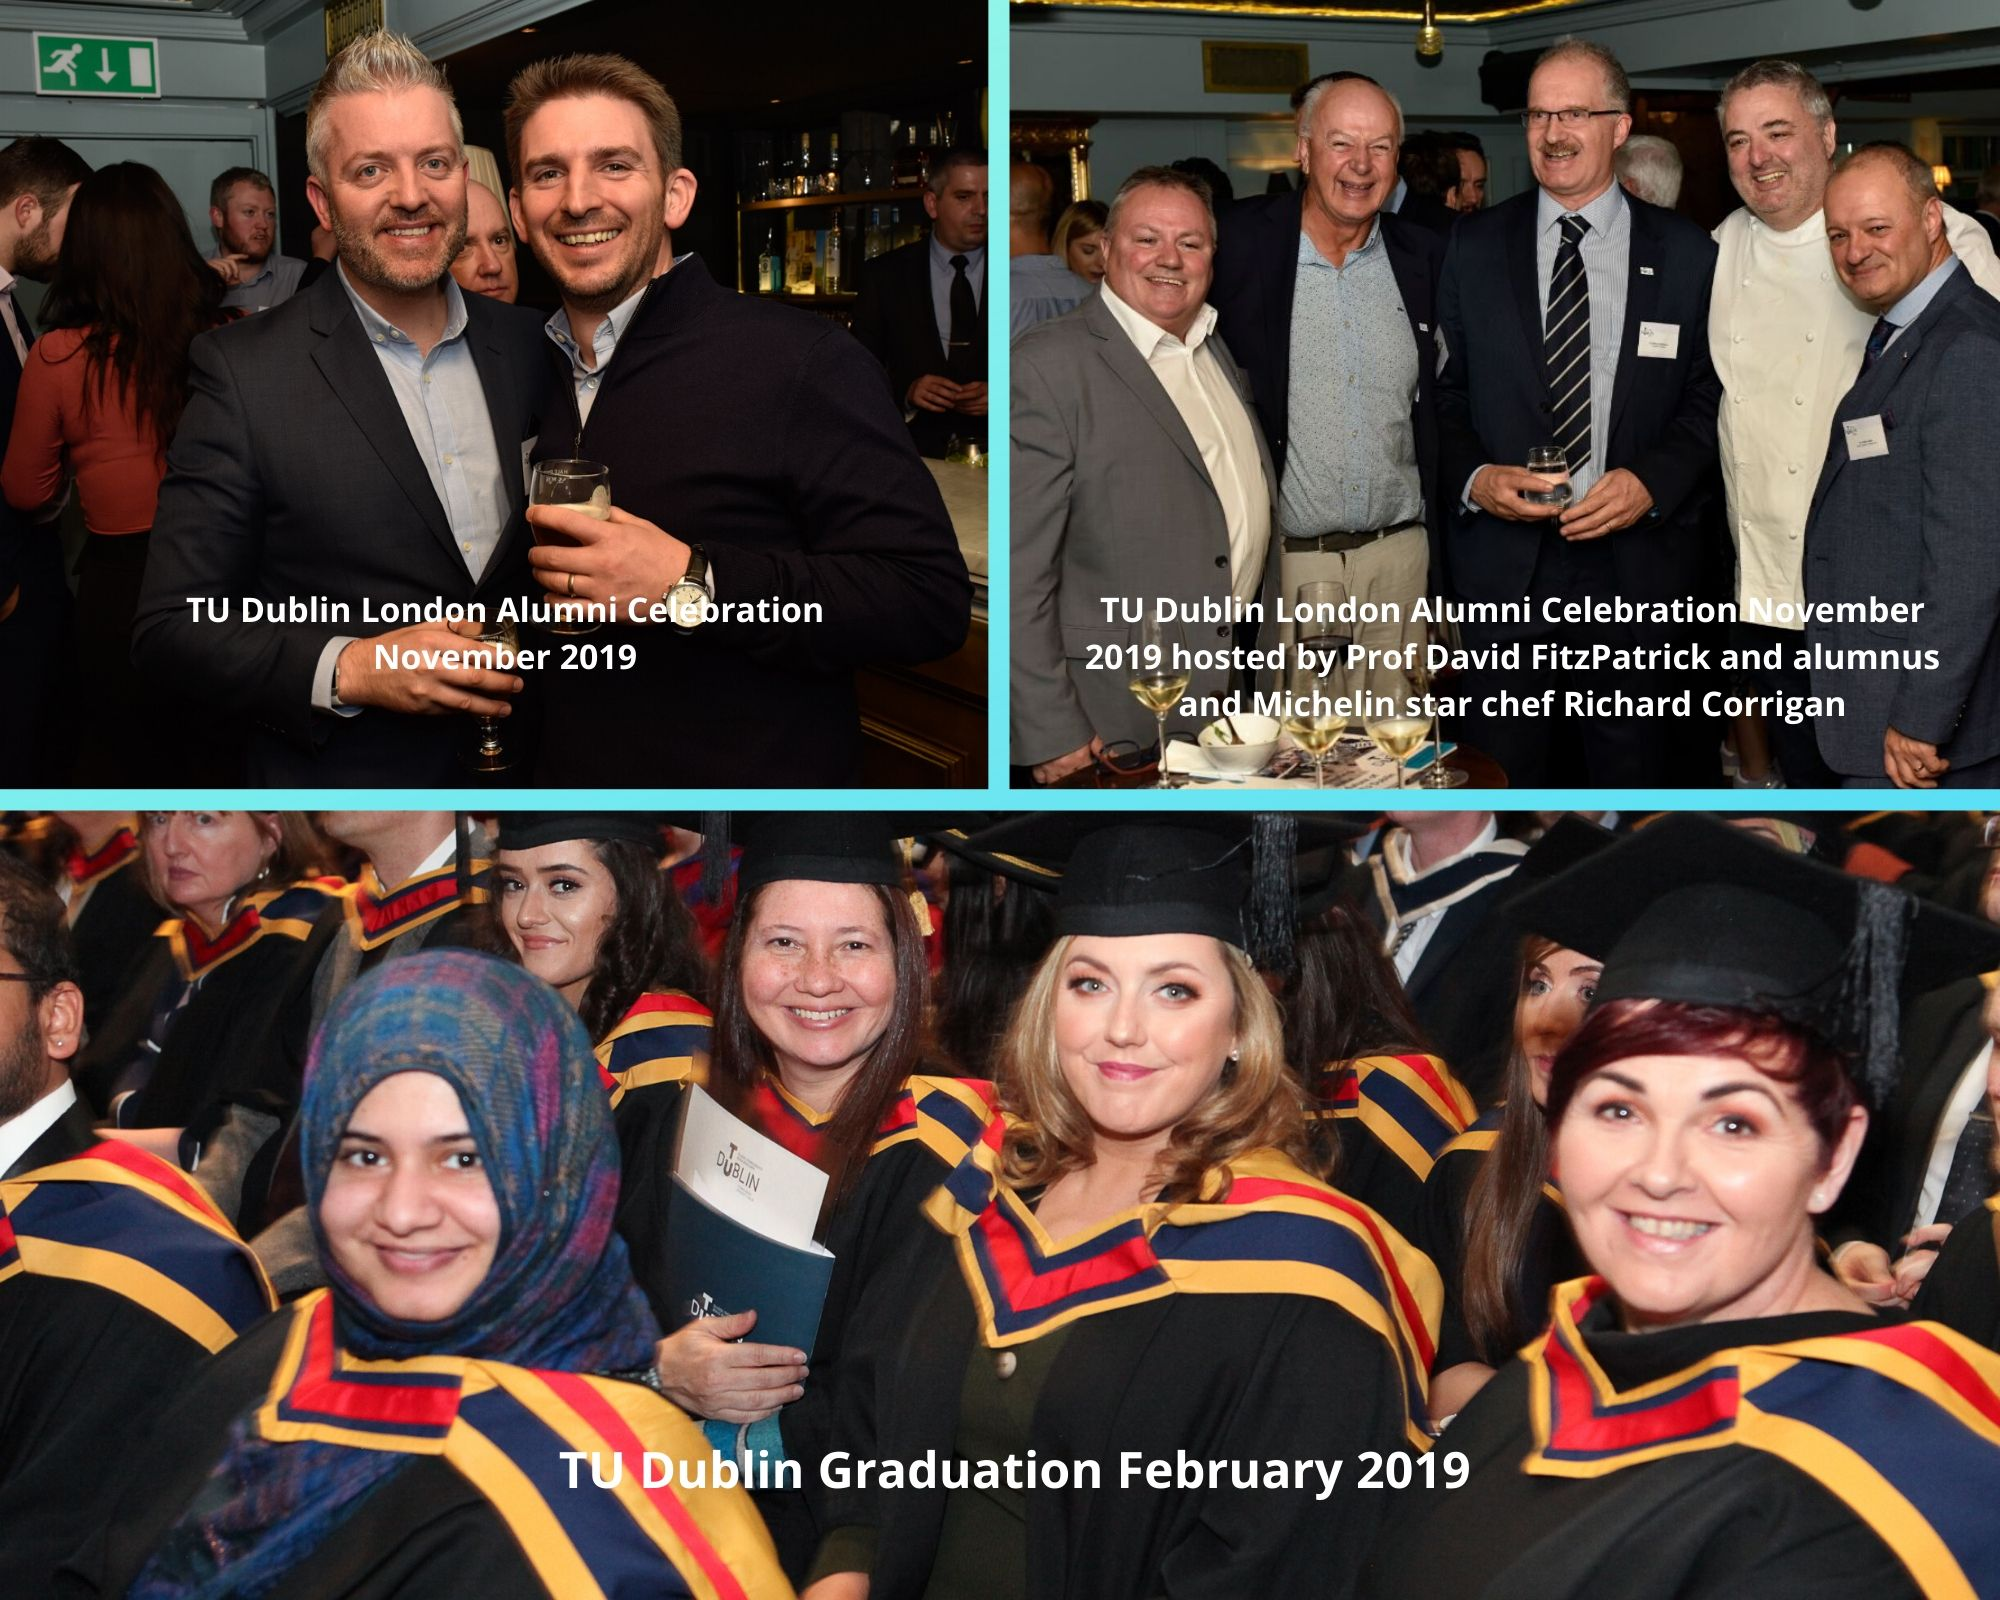 TU Dublin Graduation February 2019 Collage